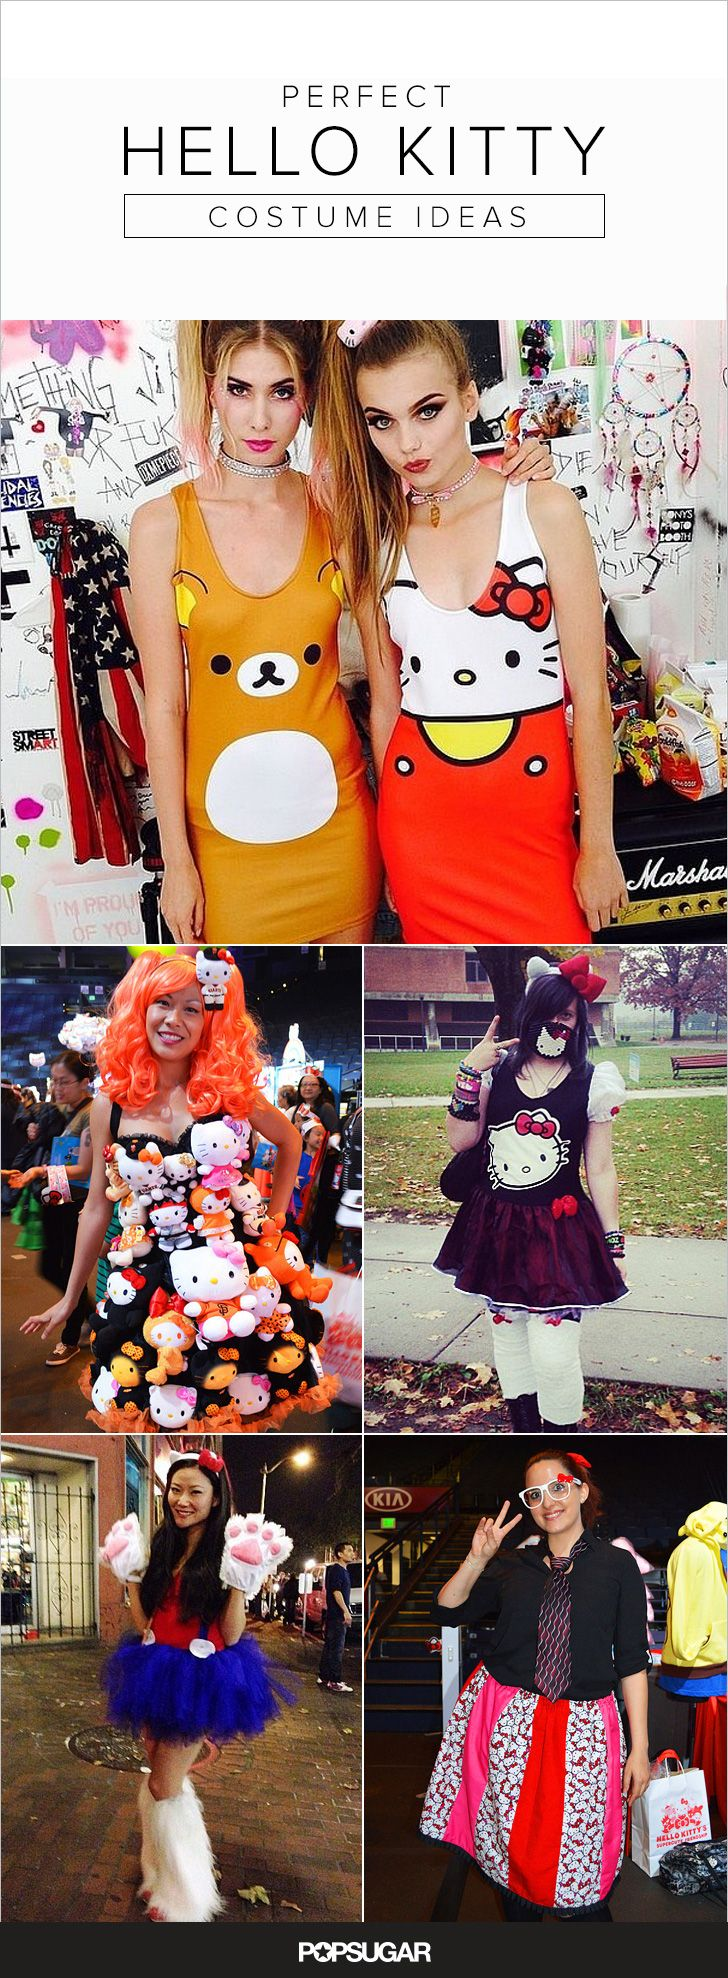 There's no better costume than a Hello Kitty costume for Halloween